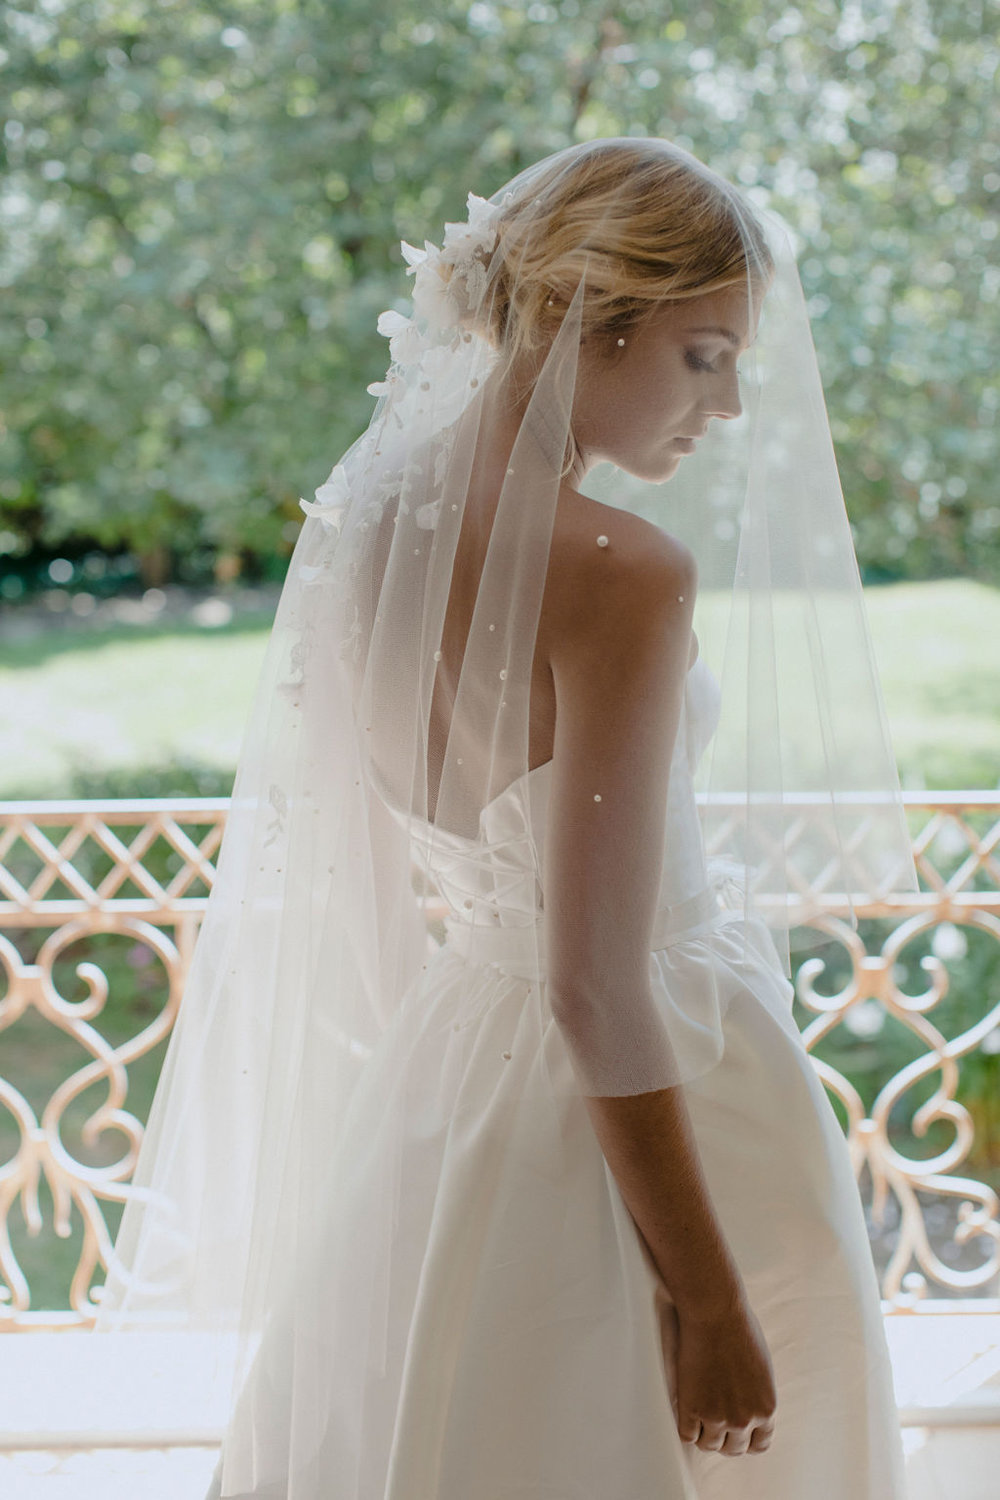 WEEPING CHERRY | EMBELLISHED SHORT WEDDING VEIL by TANIA MARAS